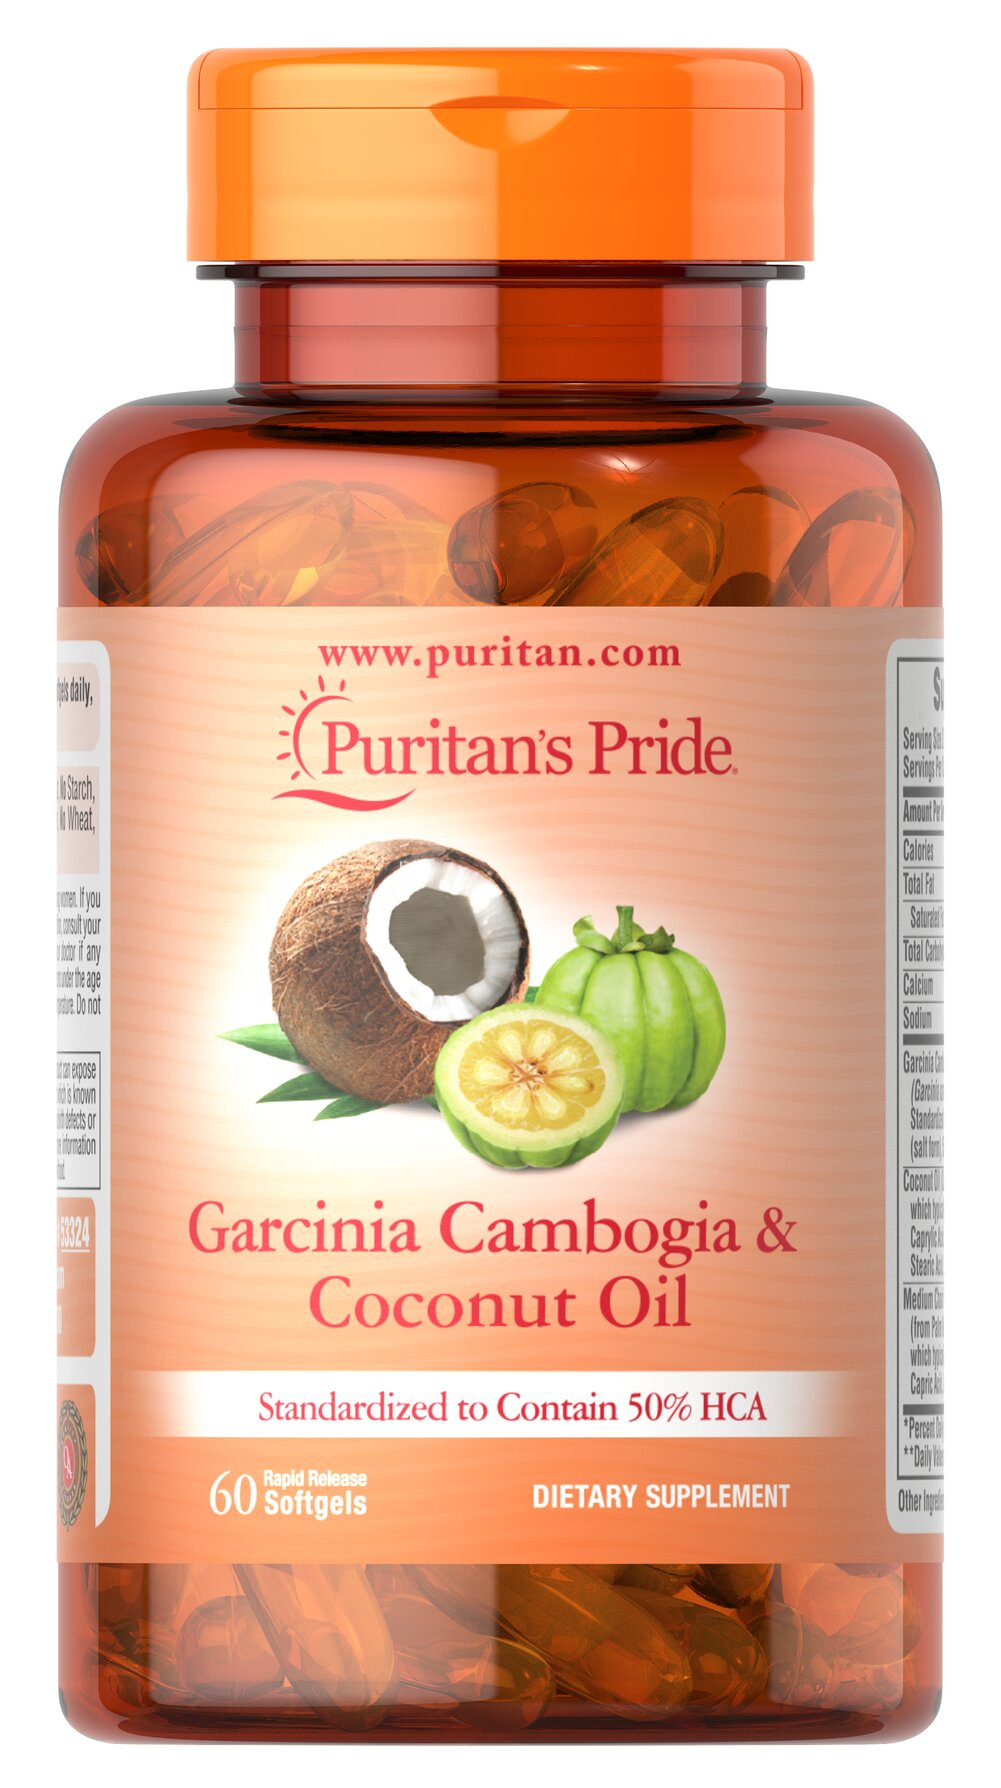 Garcinia Cambogia 500mg plus Coconut Oil 500mg <ul><li>Standardized To Contain 50% HCA</li><li>Rapid Release Capsules</li></ul><p></p><p></p> 60 Softgels 500 mg $22.99